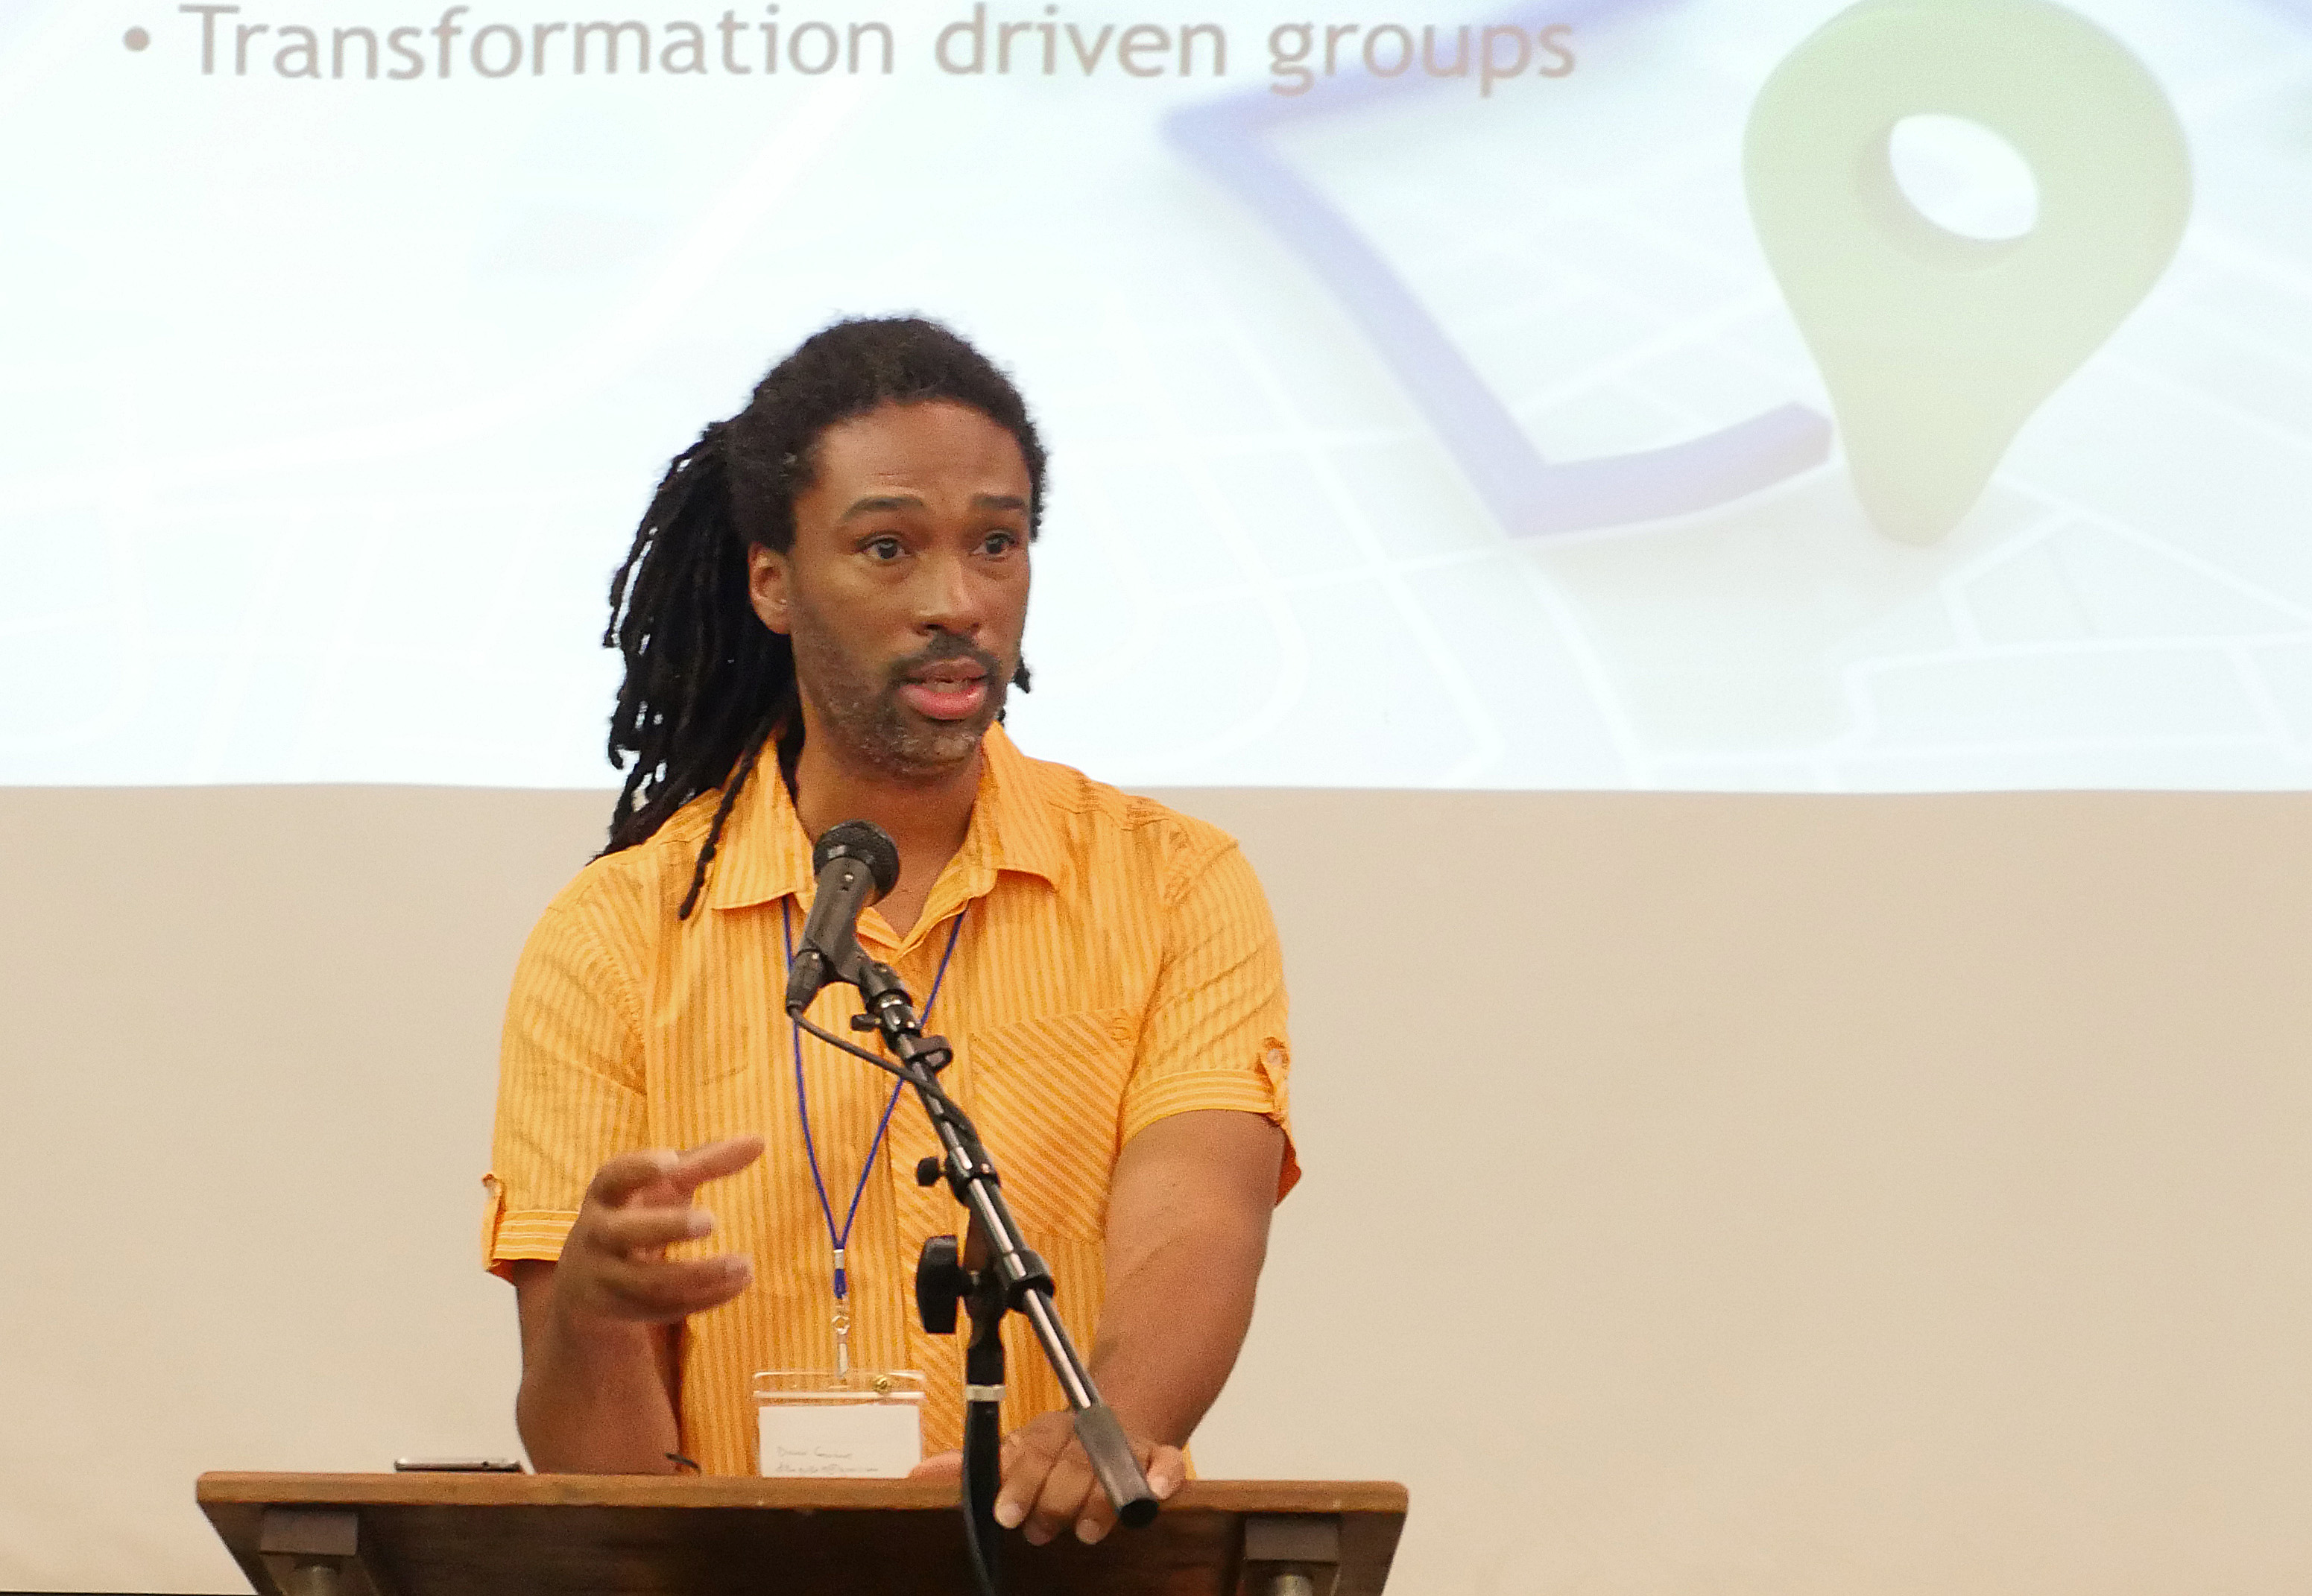 Odell Horne Jr., a member of the Southeastern Jurisdiction Young Men's Think Tank, talks about the think tank's work during a workshop at the United Methodist Men's National Gathering at St. Luke's United Methodist Church in Indianapolis. Photo by Heather Hahn, UMNS.